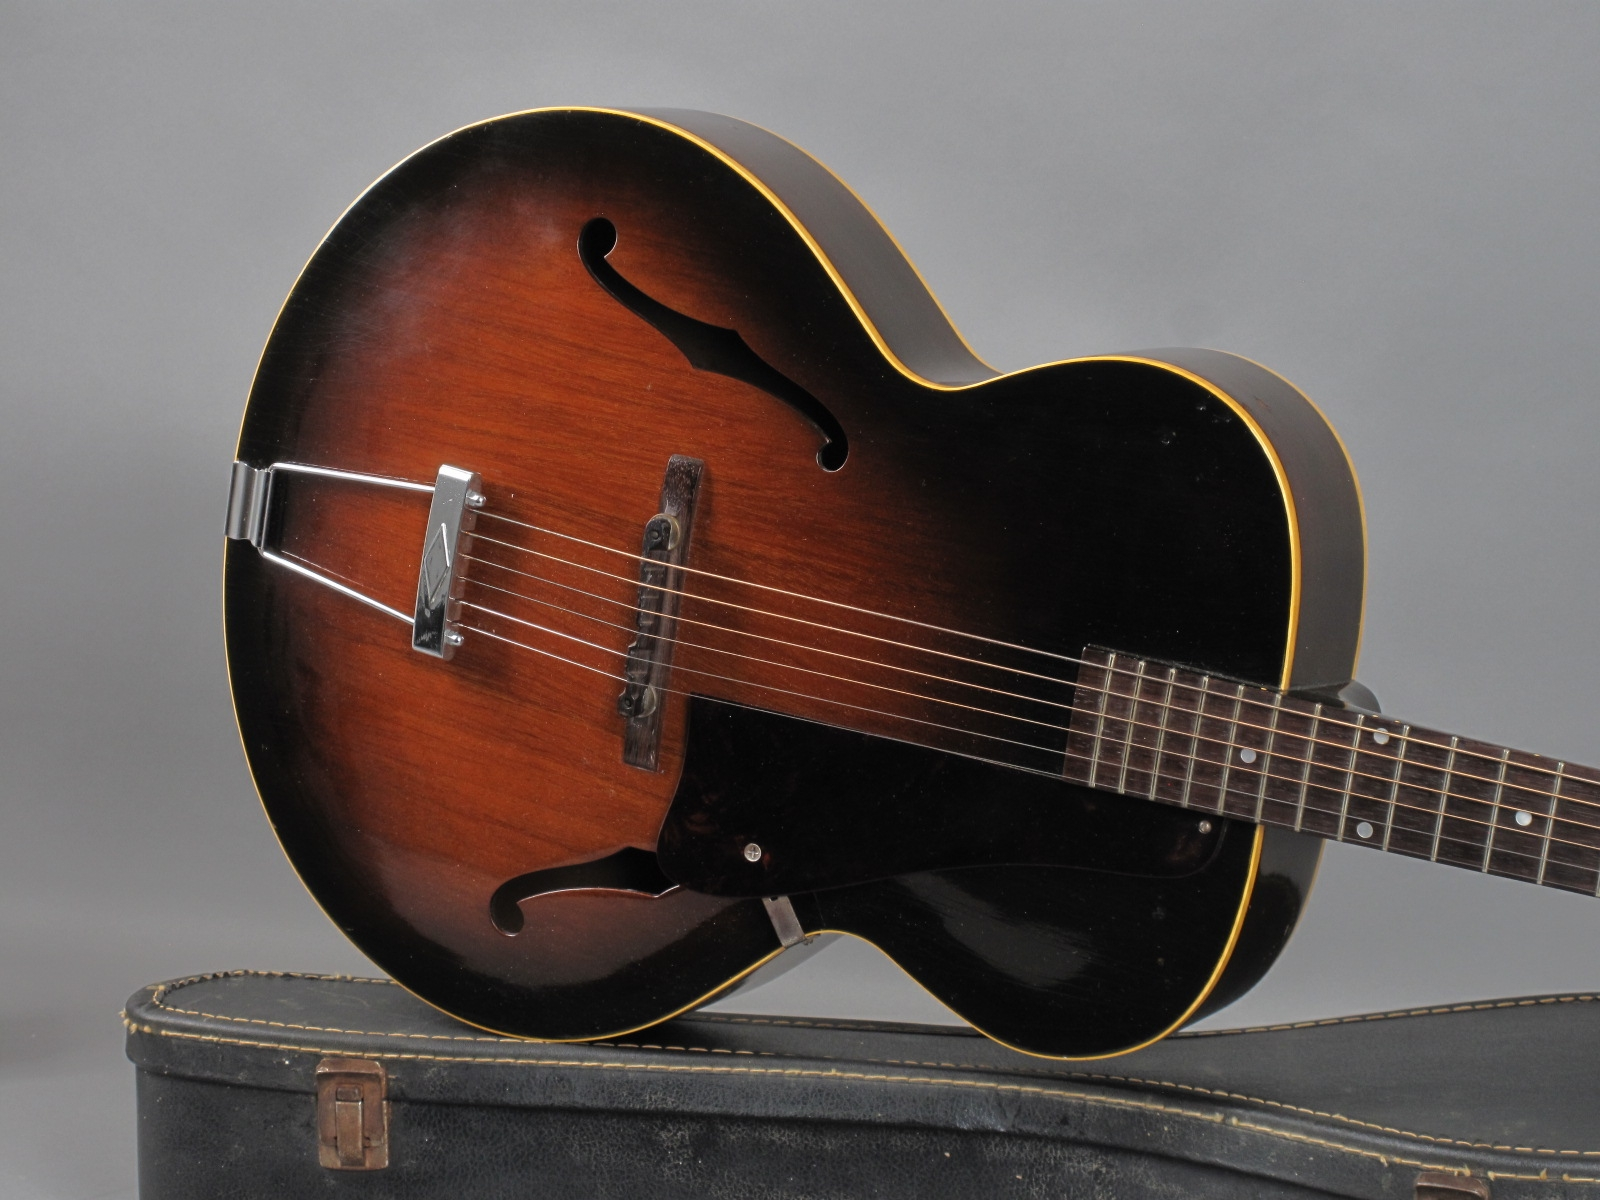 https://guitarpoint.de/app/uploads/products/1951-gibson-l-48-sunburst/1951-Gibson-L48-Sunburst-69412_19.jpg